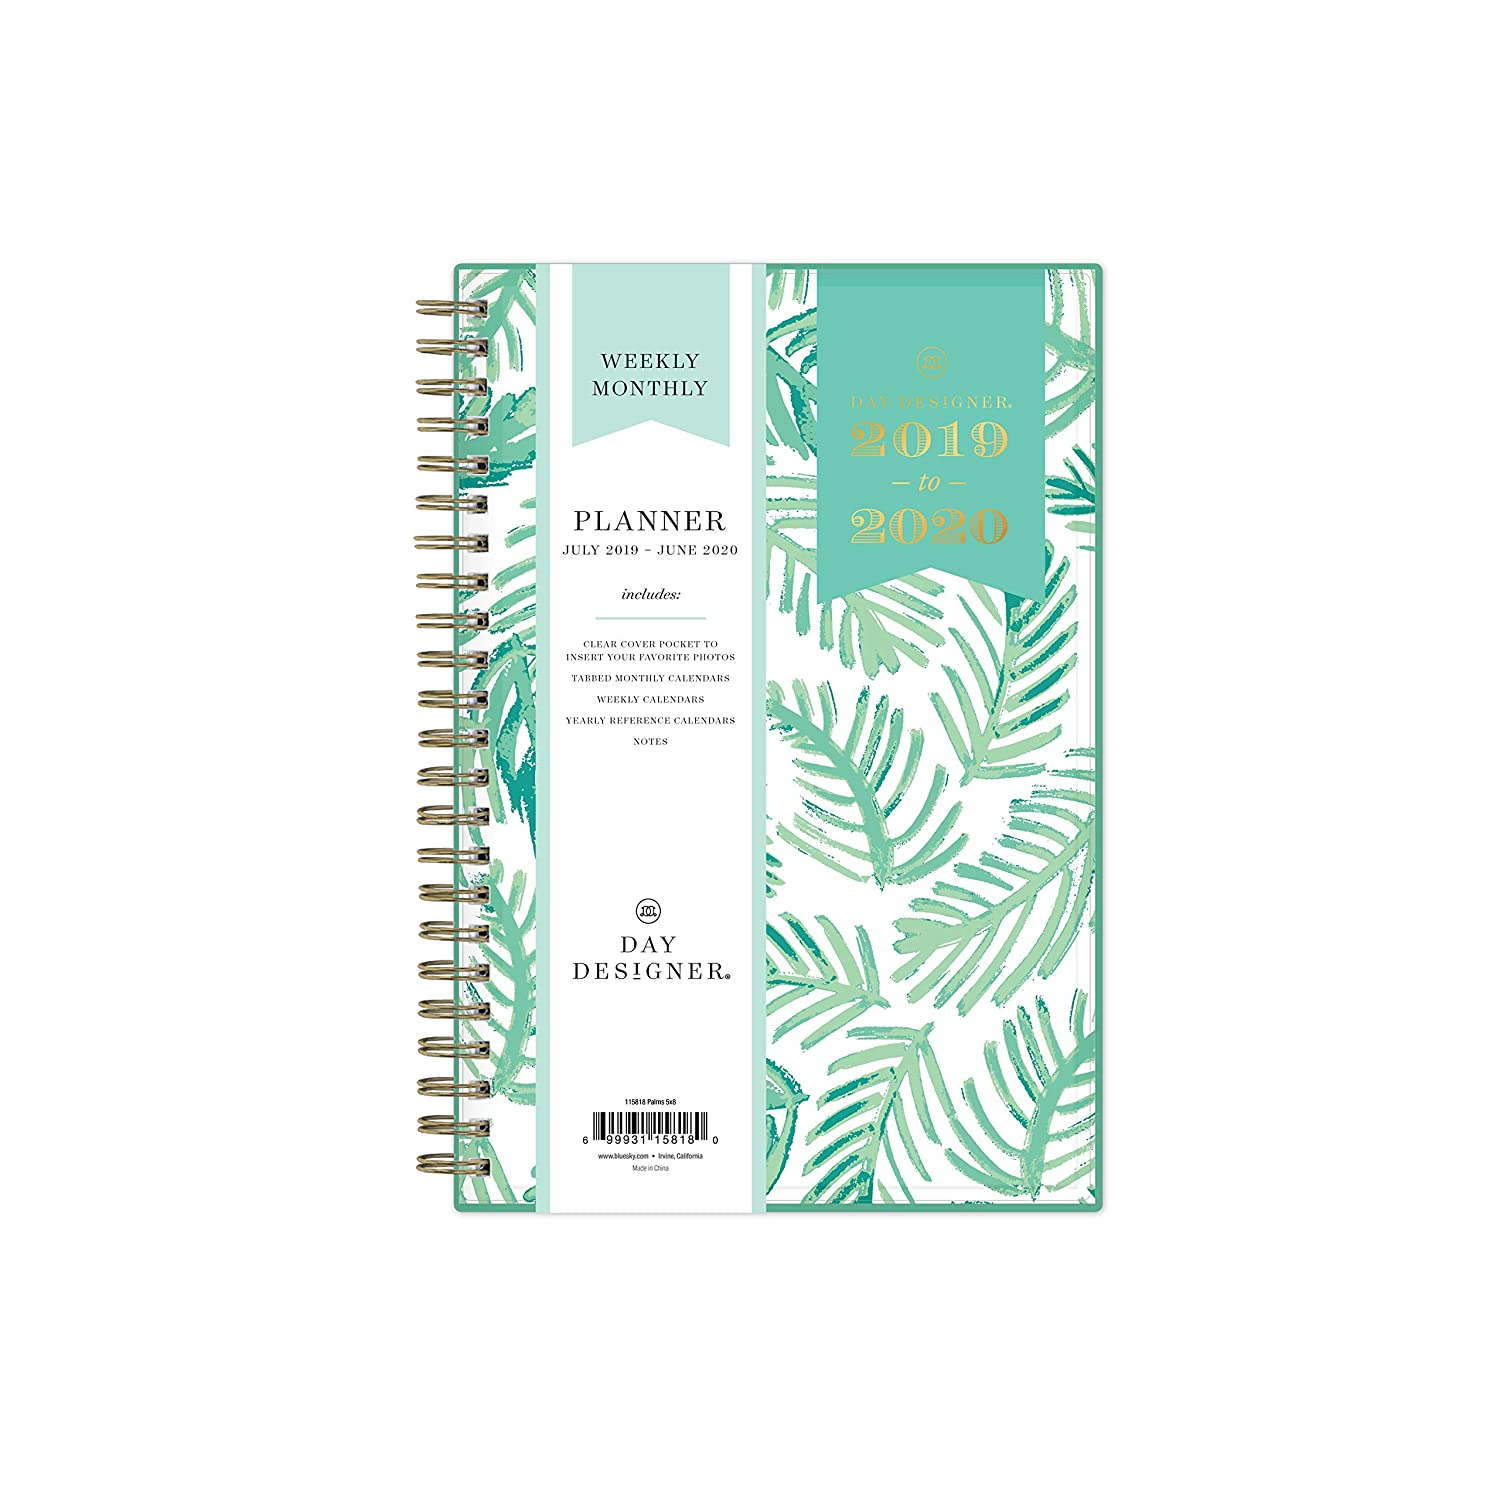 graphic about Day Designer for Blue Sky called Working day Designer for Blue Sky 2019-2020 Educational Yr Weekly Month to month Planner, Multipurpose Go over, Dual-Twine Binding, 5\